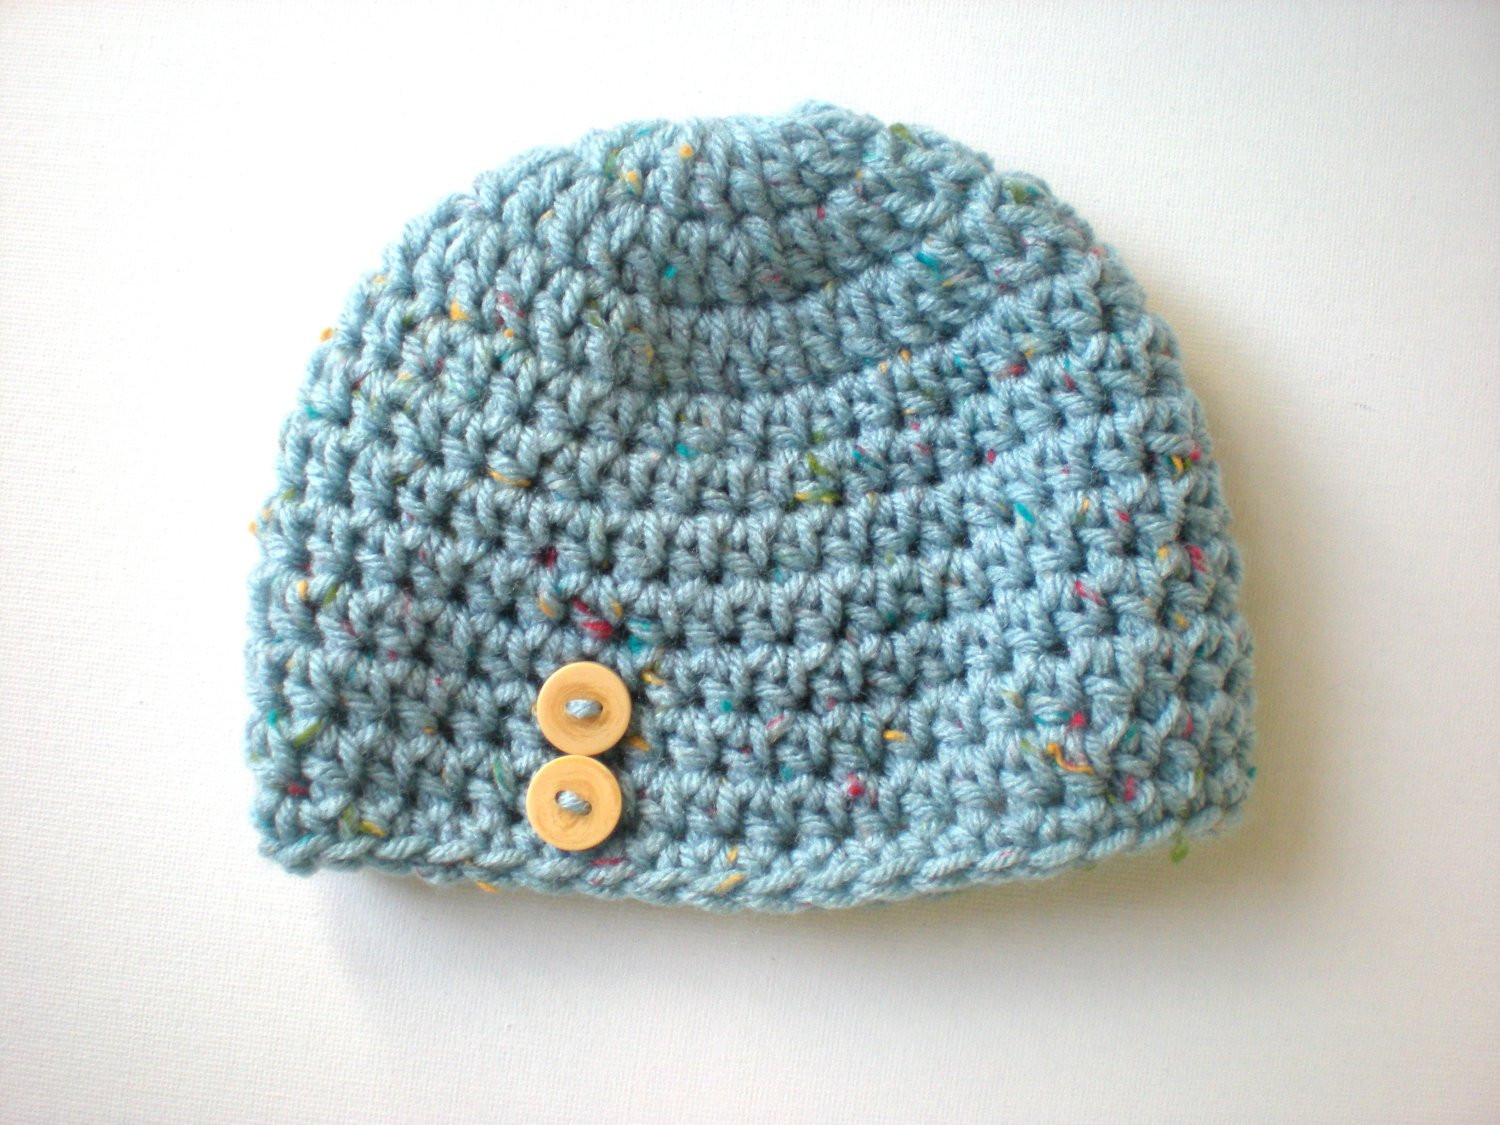 Best Of Pattern Basic Beanie Easy Crochet Pdf Instant Download Easy Crochet Hat Patterns for Adults Of Delightful 48 Photos Easy Crochet Hat Patterns for Adults